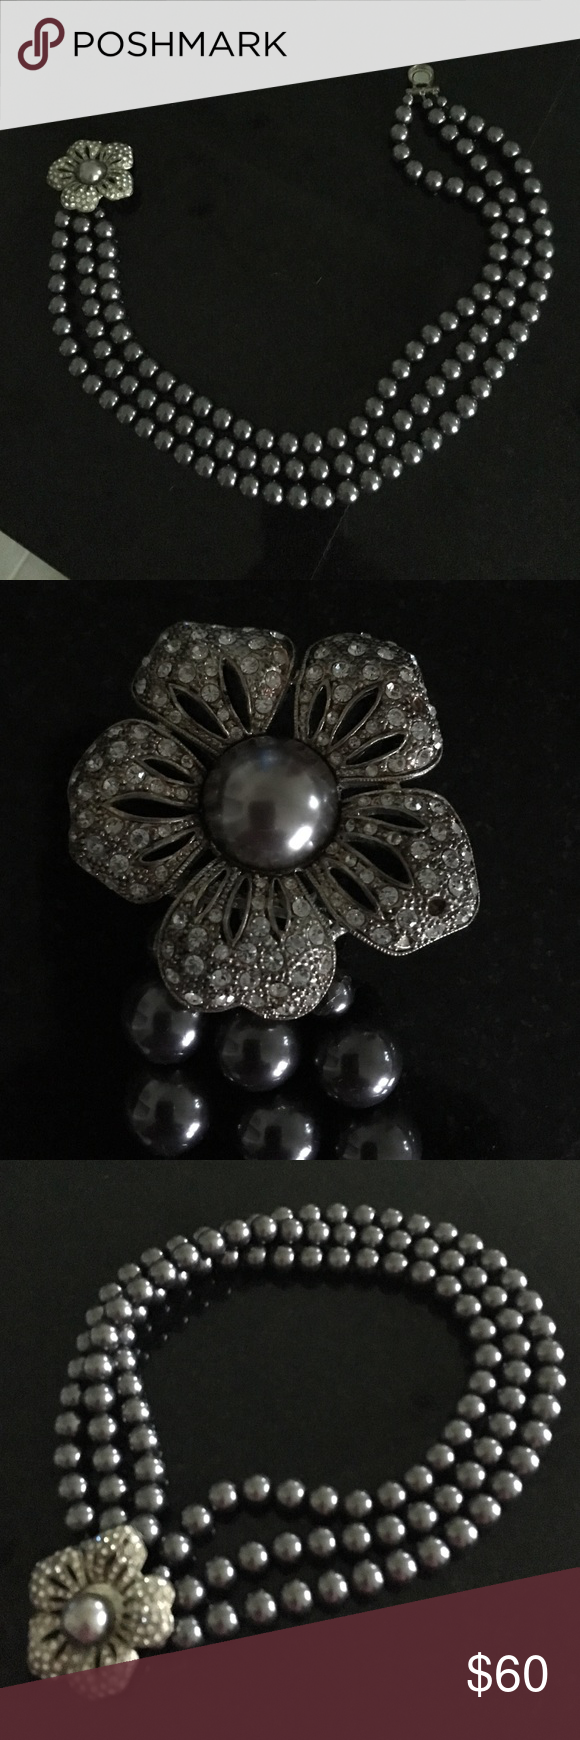 Banana Republic pearl statement necklace Gorgeous 3-stranded gray pearls close magnetically with rhinestone and pearl floral brooch. In perfect condition with no stones missing. Banana Republic Jewelry Necklaces